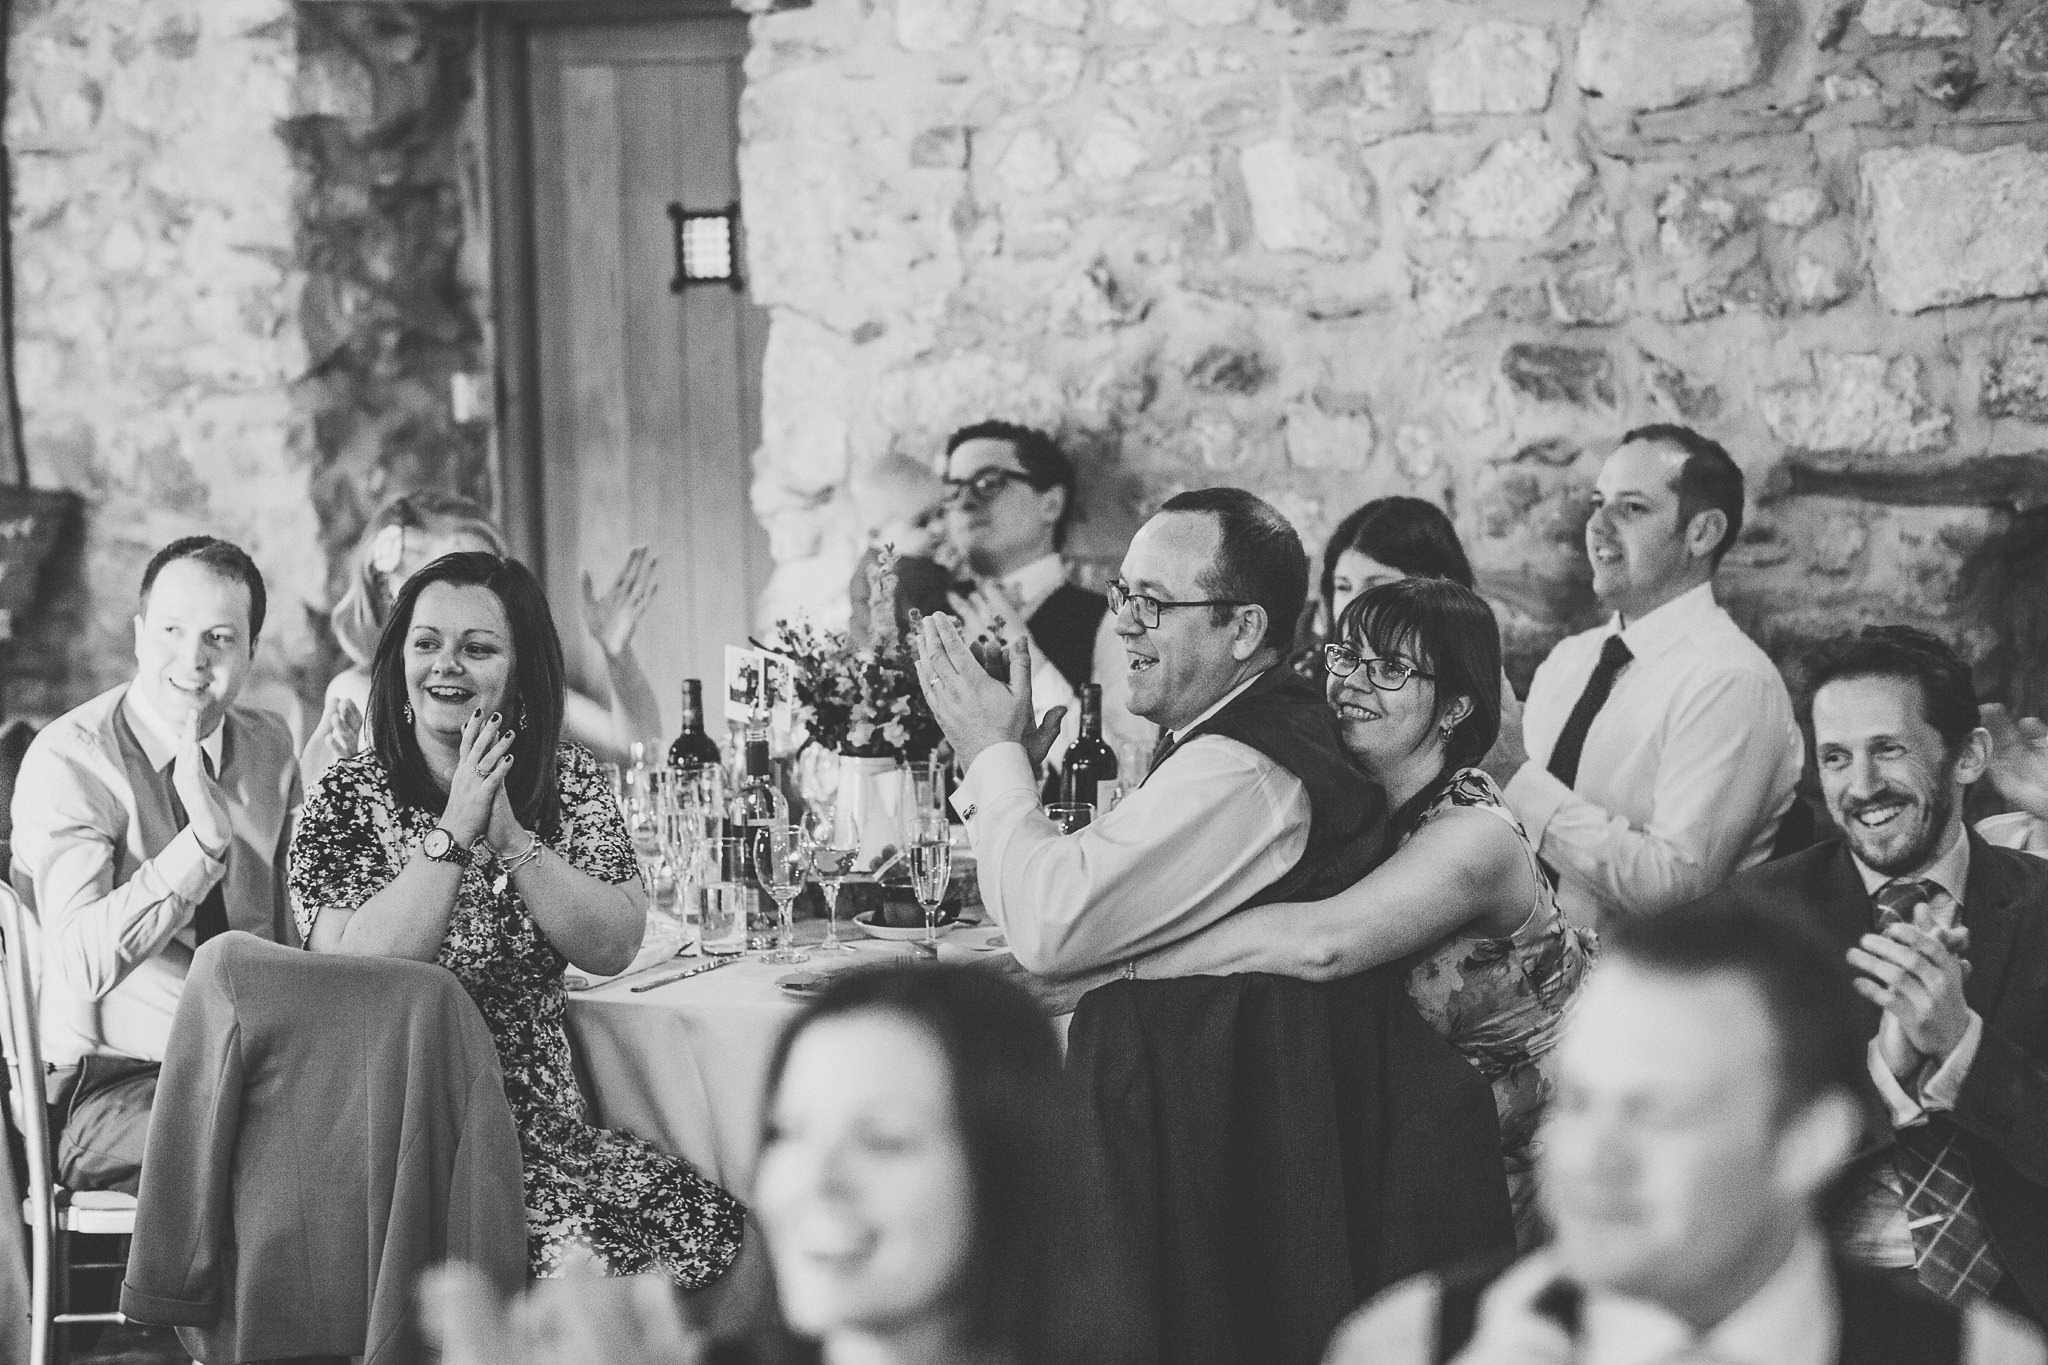 plas-isaf-corwen-north wales wedding-photography-photographer-91068